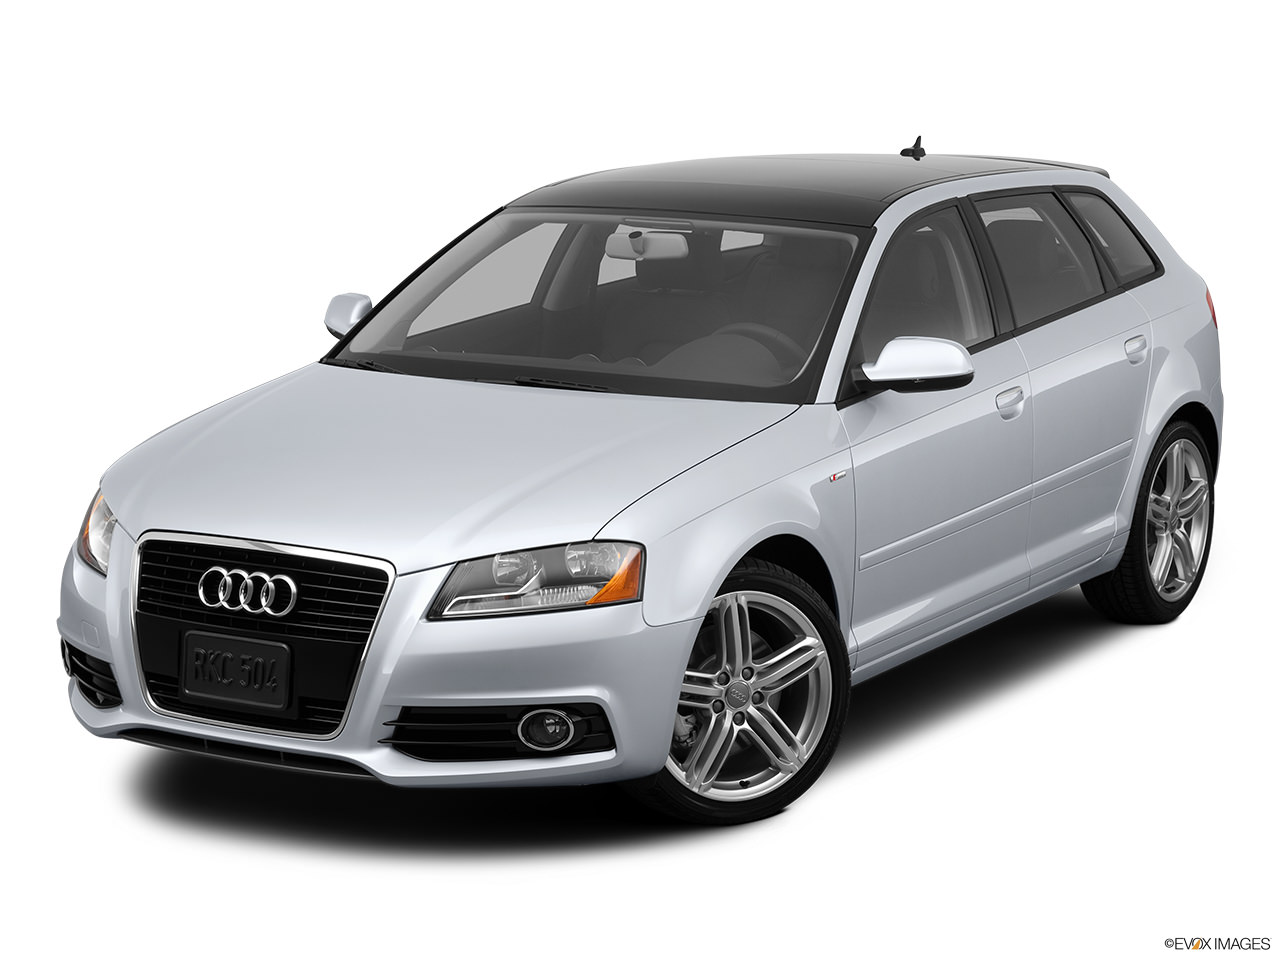 A Buyer's Guide to the 2012 Audi A3 | YourMechanic Advice